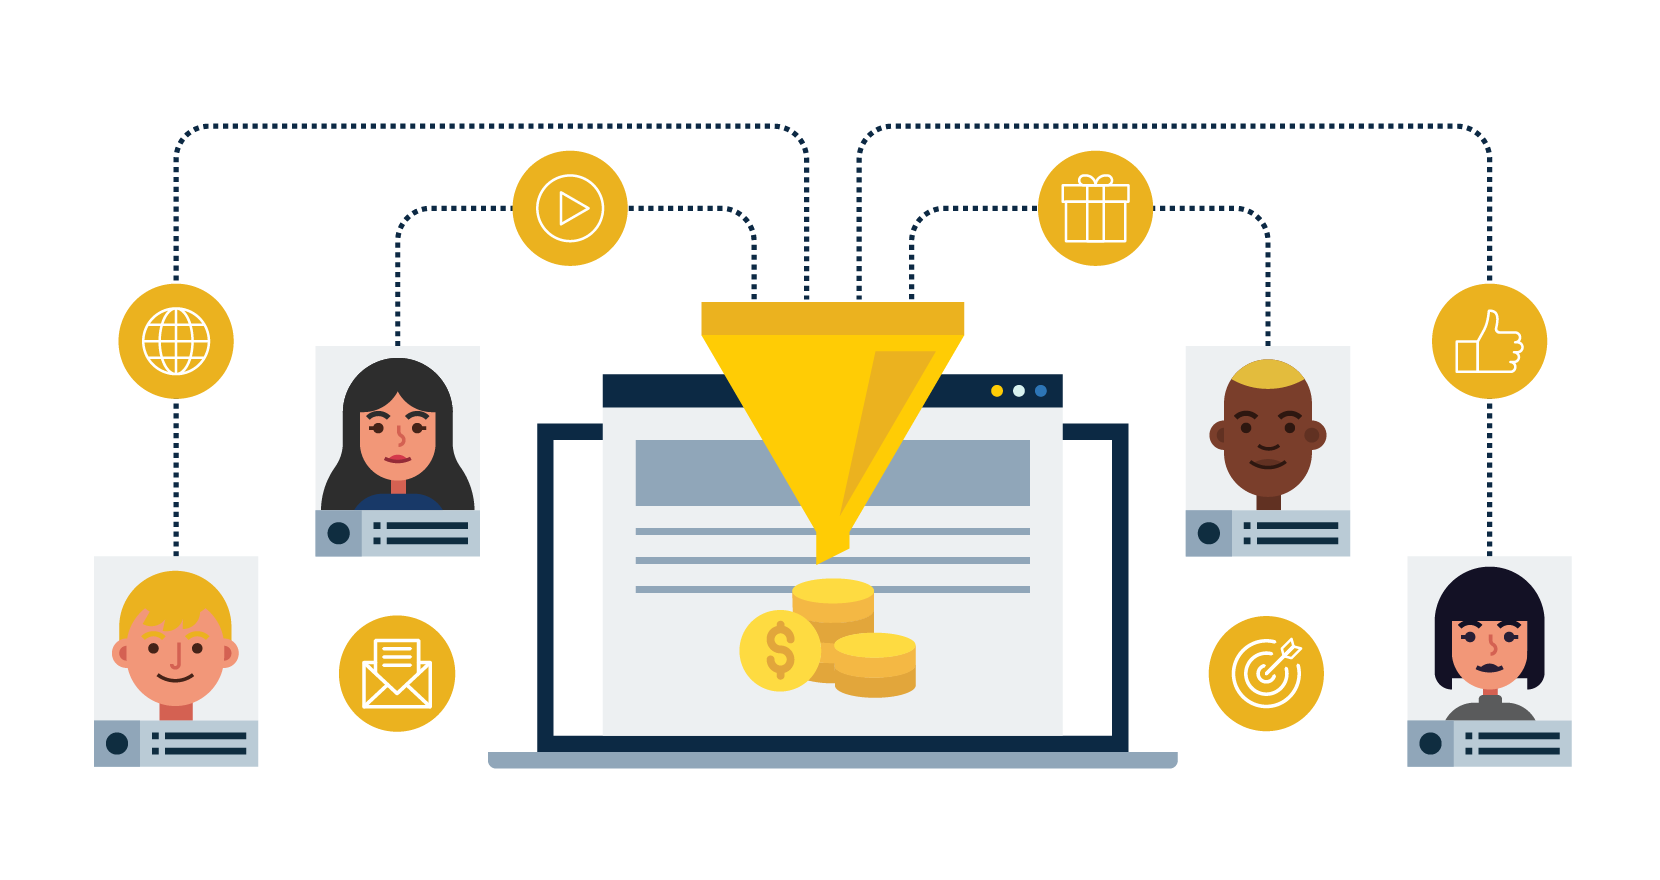 Lead Generation: A Guide to Growing Your Sales Funnel